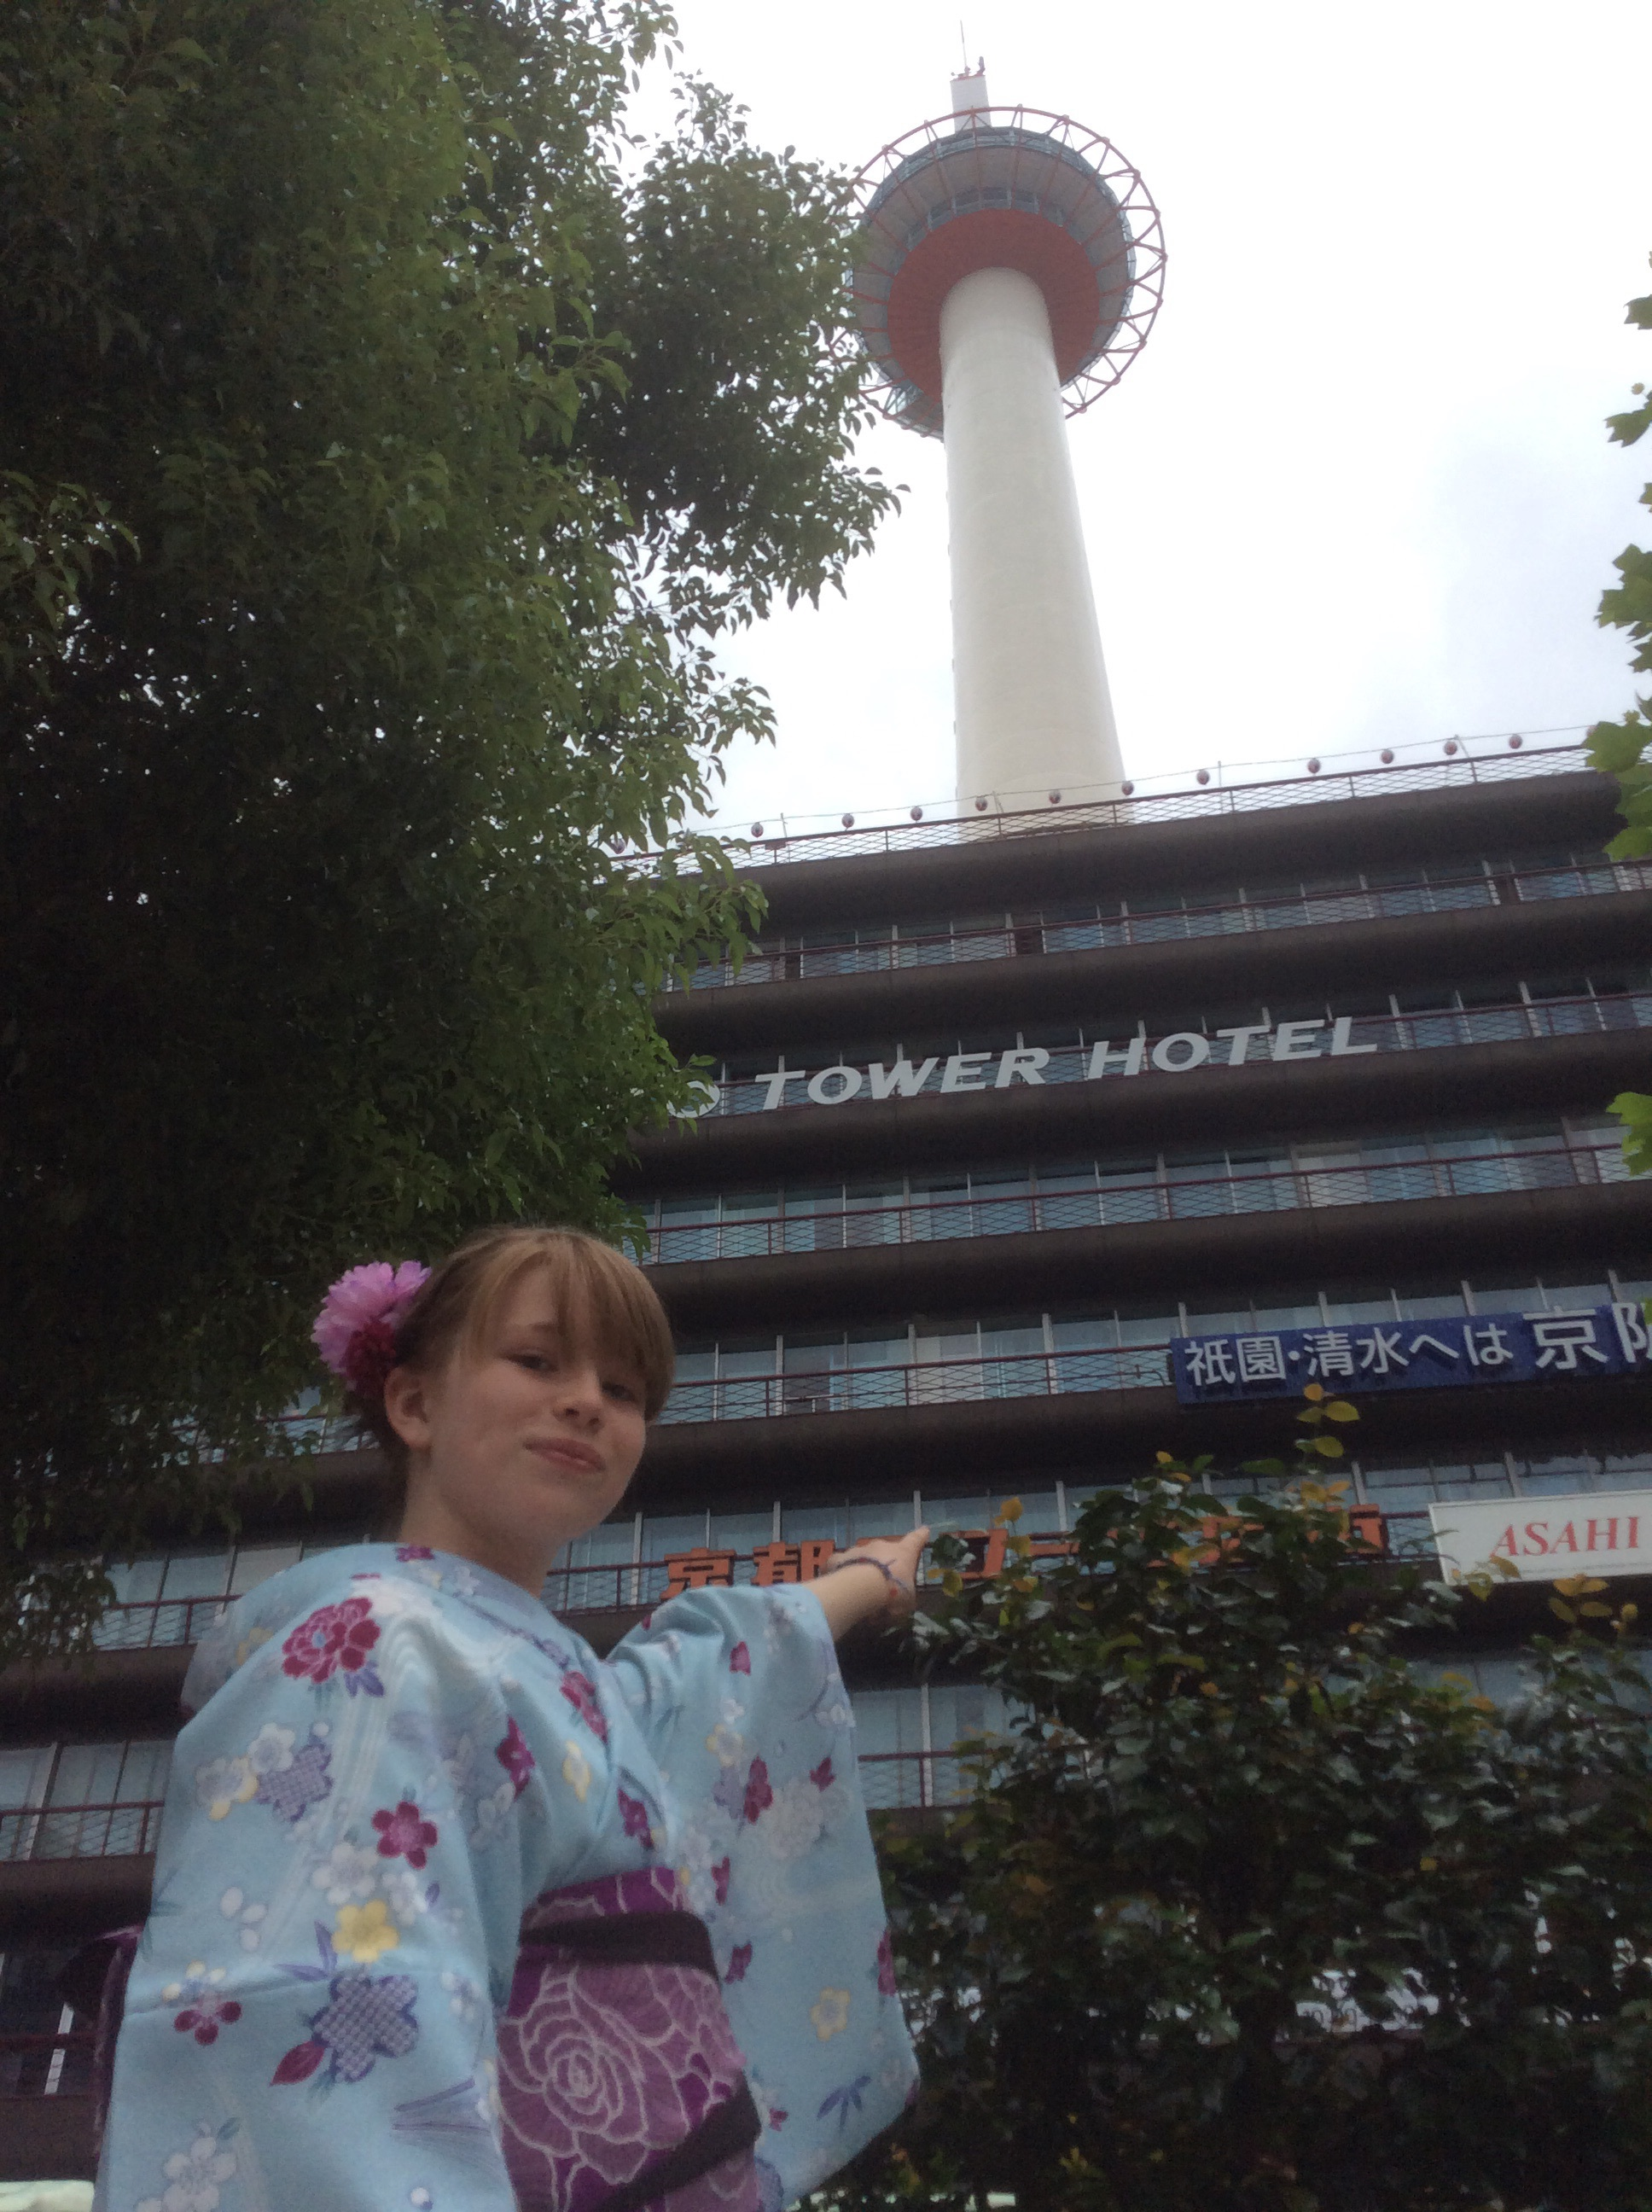 Kyoto tower. It lights up at night.